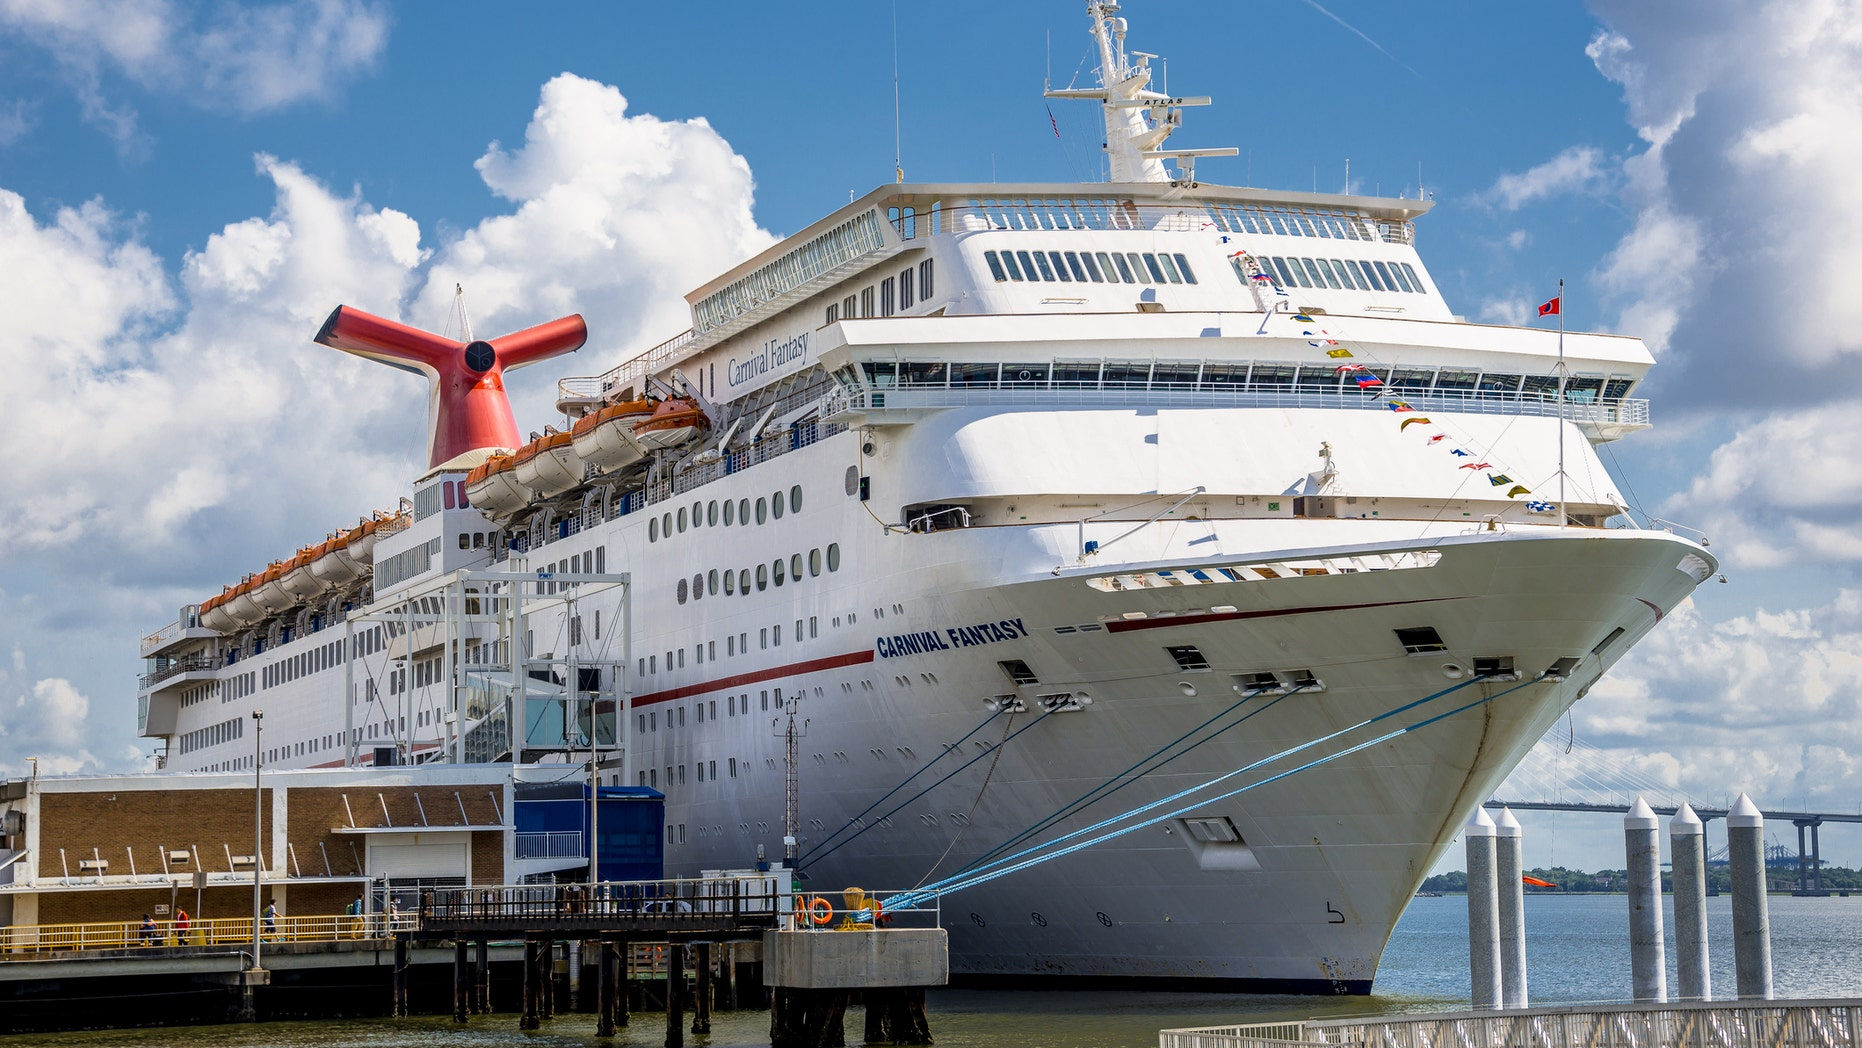 A passenger went missing from the Carnival Fantasy, seen at the Port of Charleston in 2015, while heading to a port in Cozumel, Mexico.